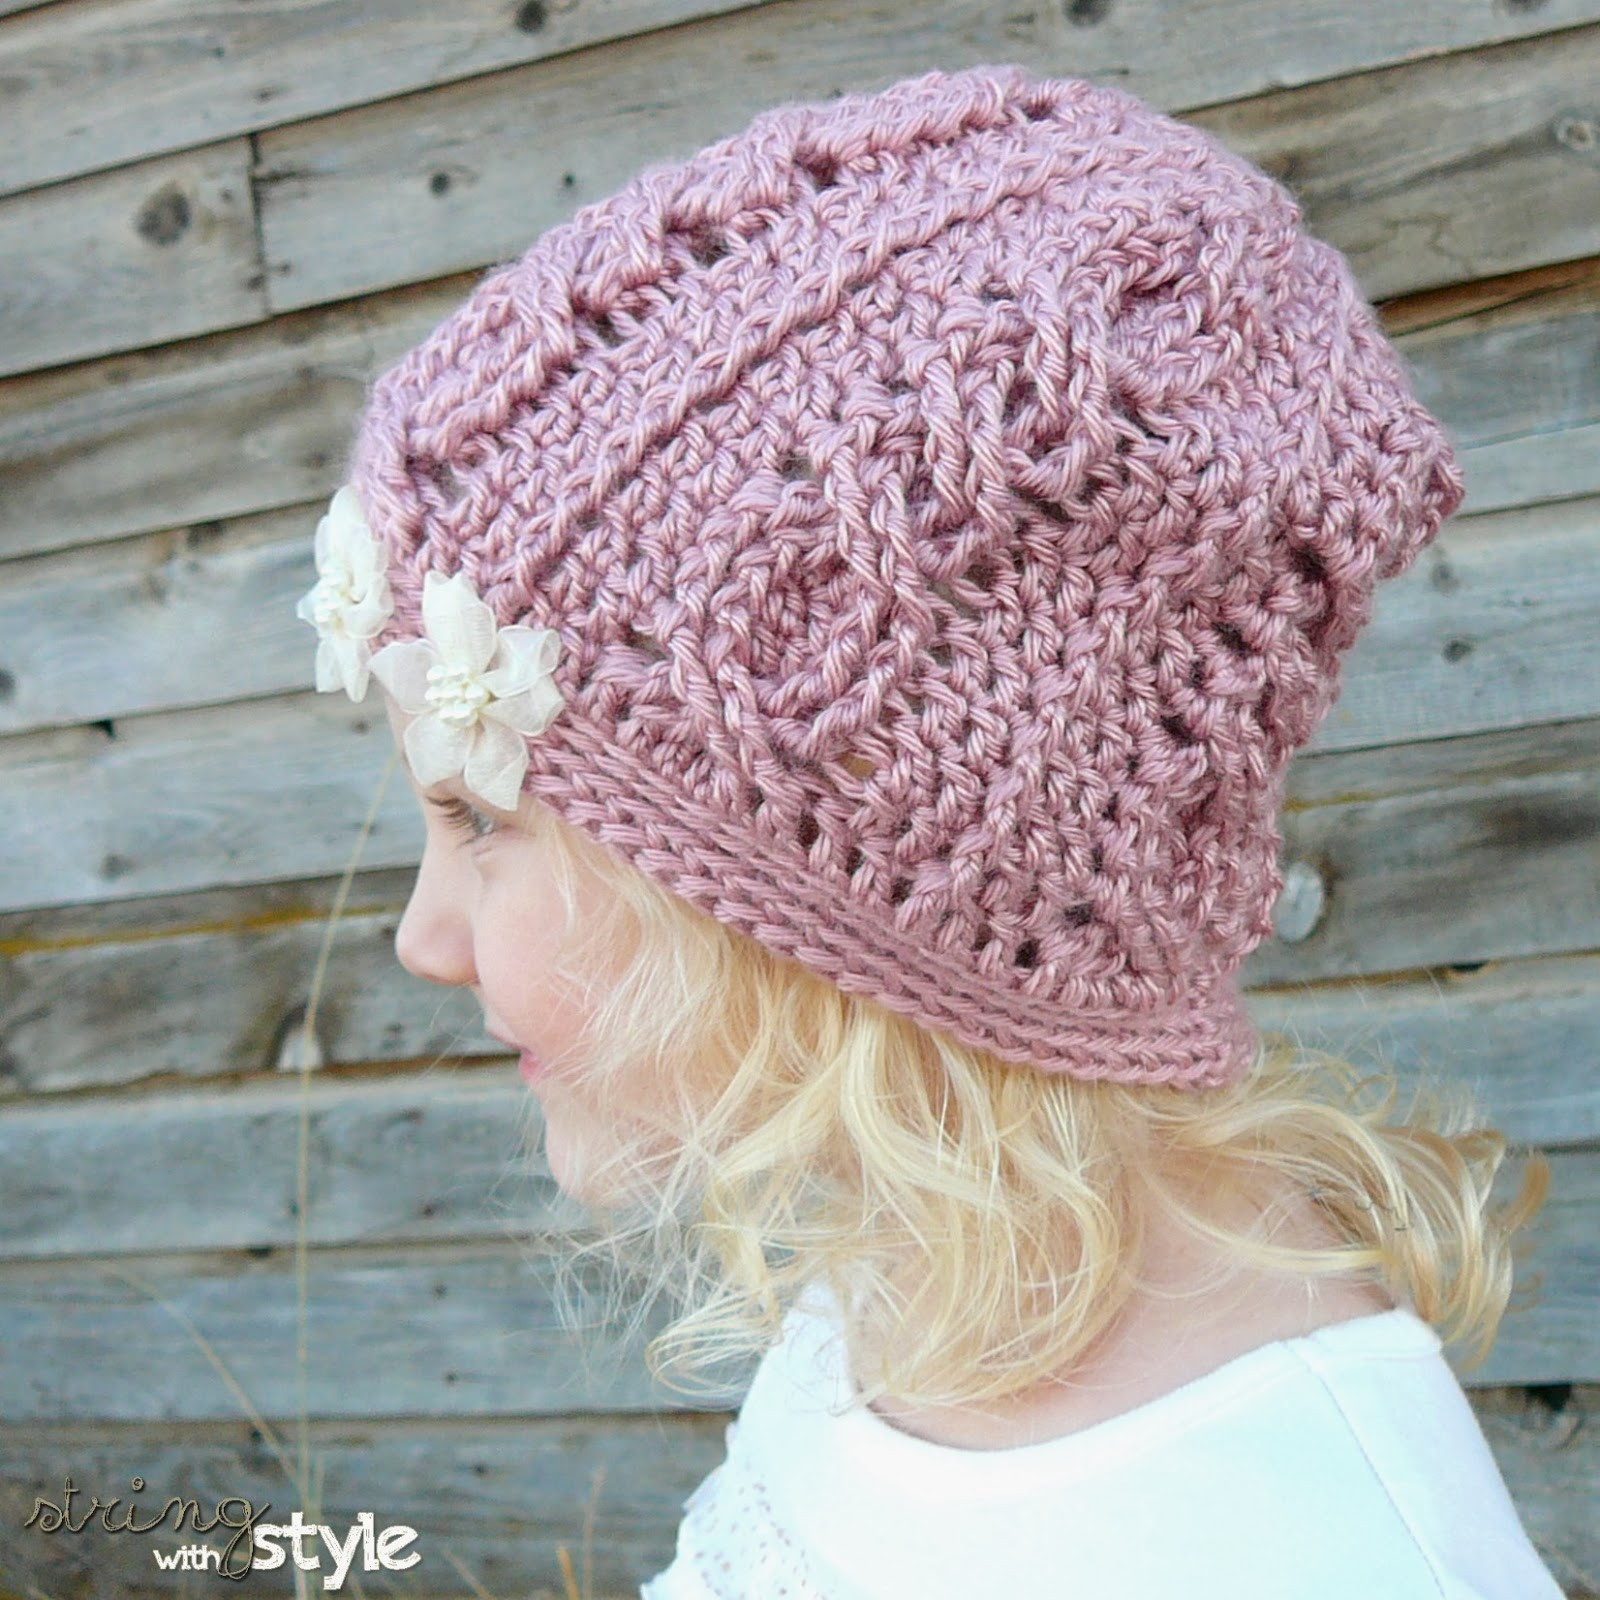 Crochet Cable Pattern Inspirational String with Style Cabled Cutie Slouch Of Perfect 40 Ideas Crochet Cable Pattern